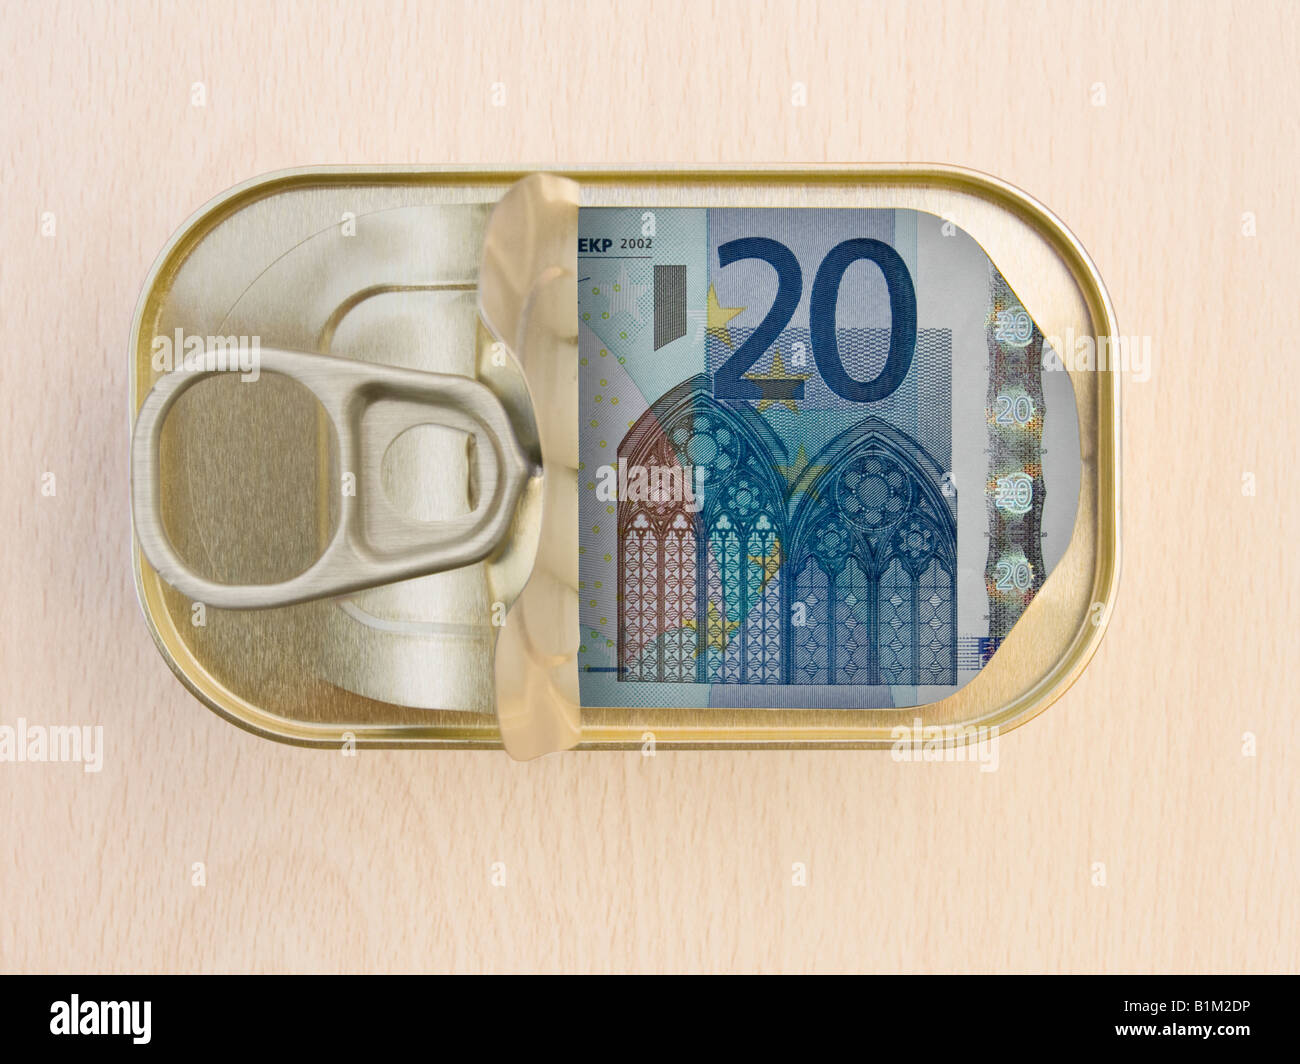 Plan view of a Ring Pull Tin containing 20 Euros on wooden surface Stock Photo